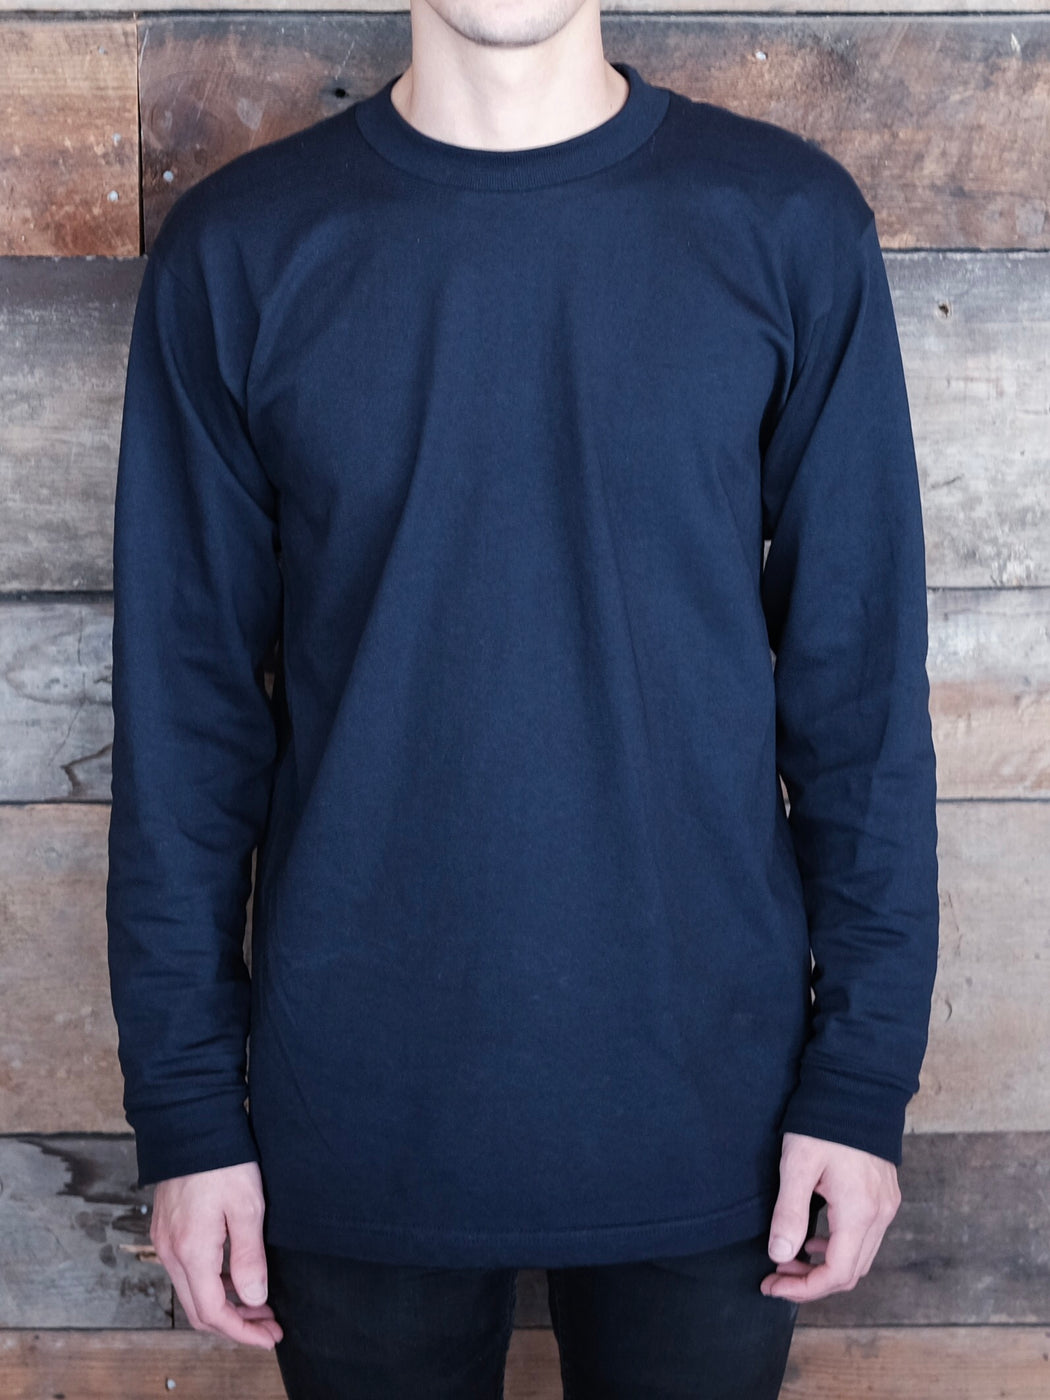 Felding Co Long Sleeve Tee, Felding Co, - Felding Co